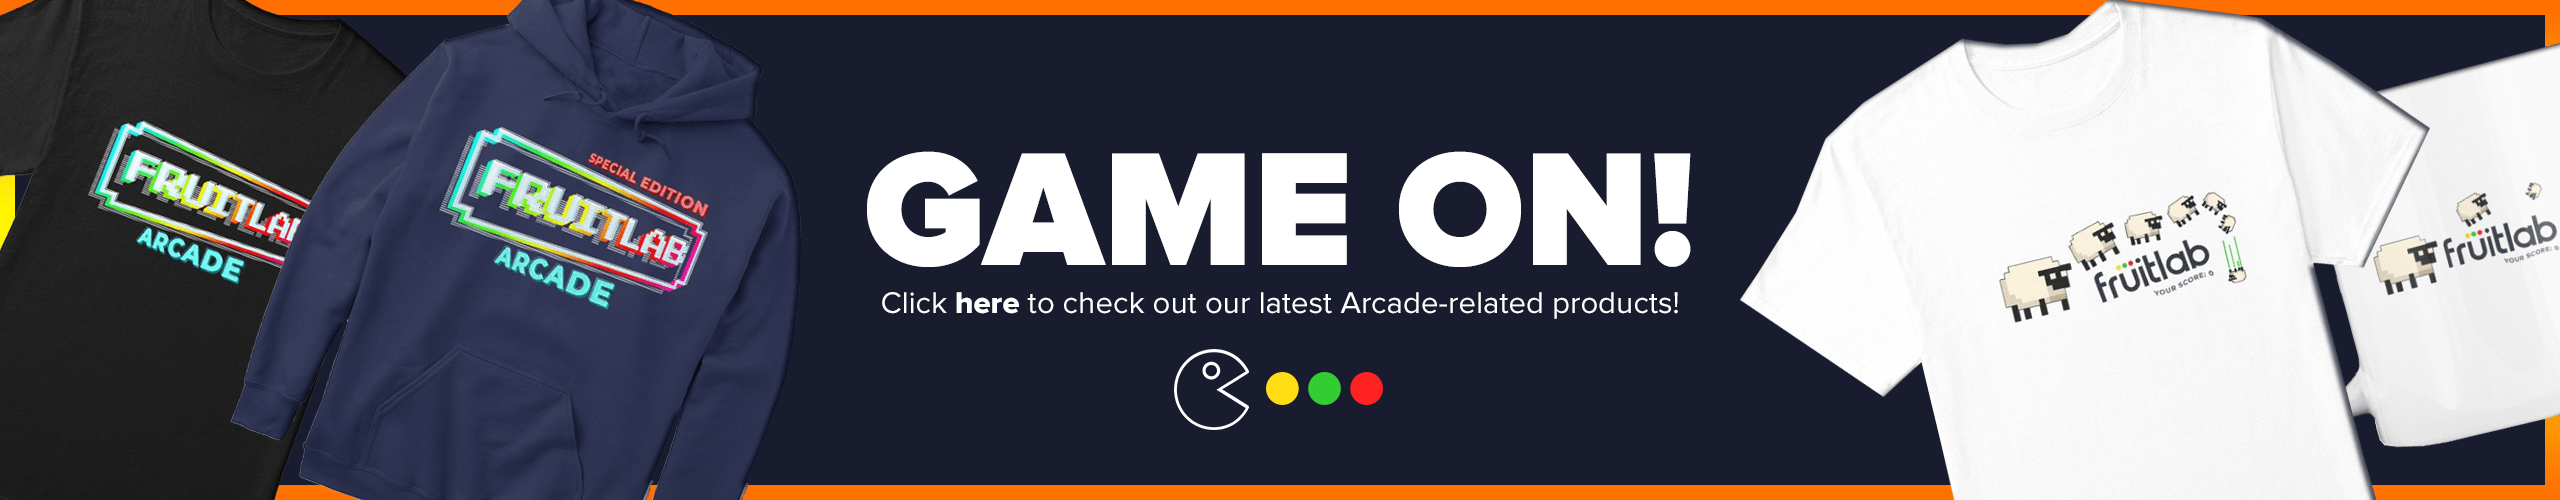 Arcade-related products have arrived!